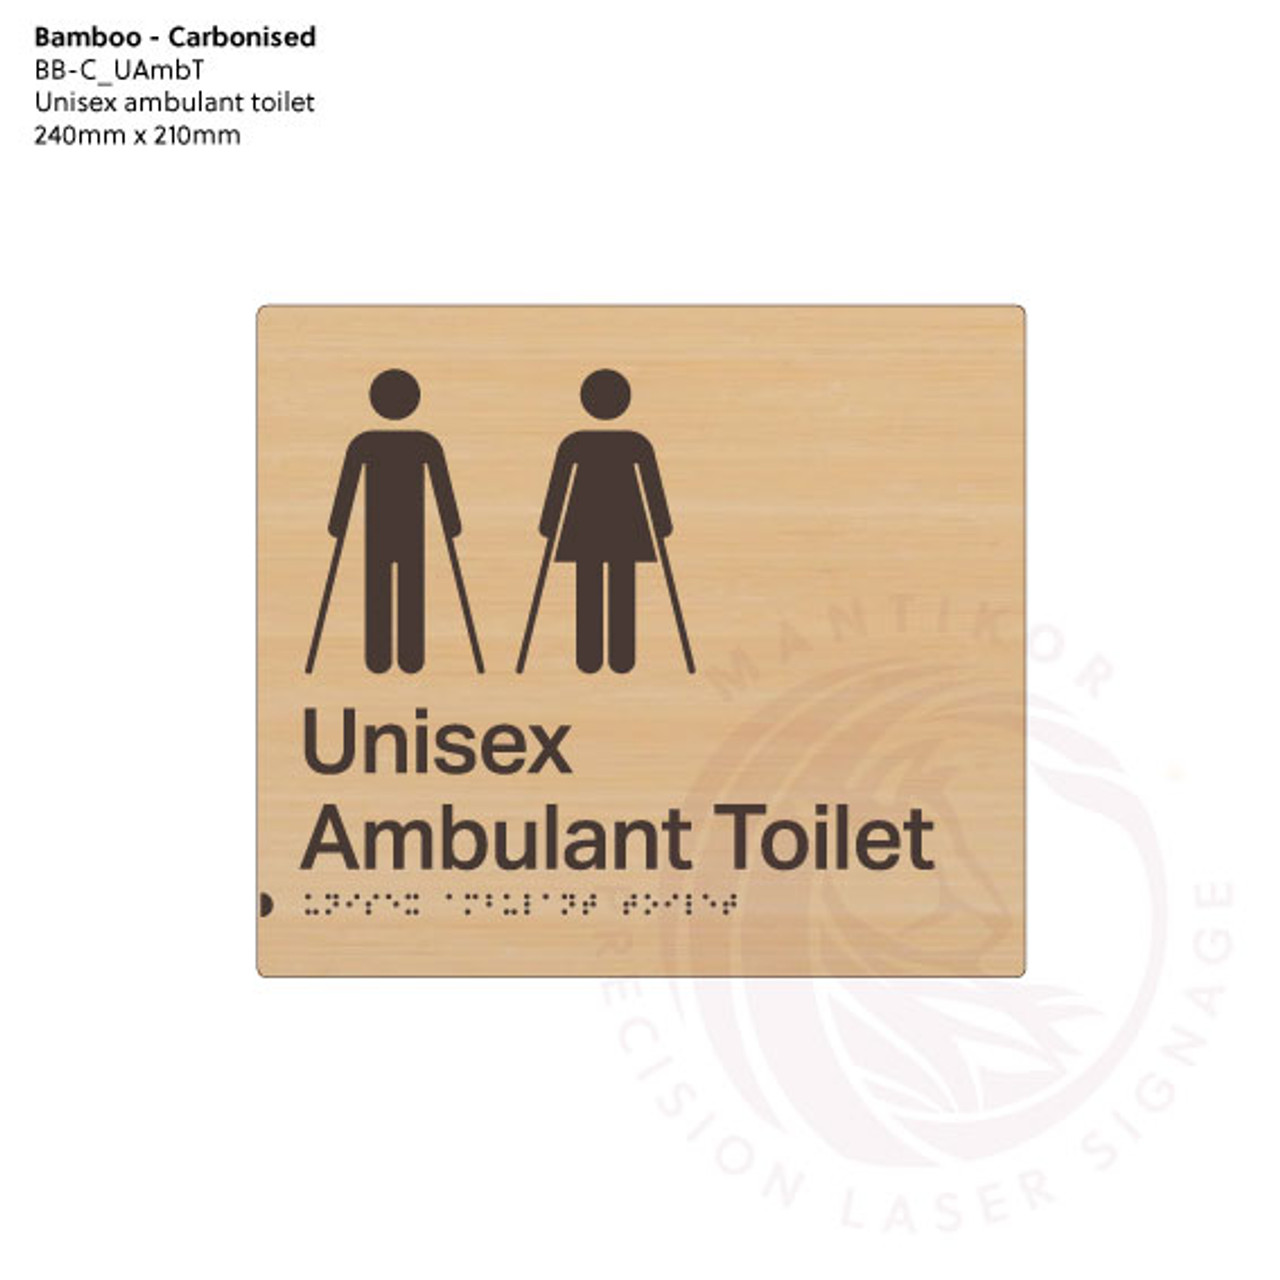 Carbonised Bamboo Tactile Braille Signs - Unisex Ambulant Toilet